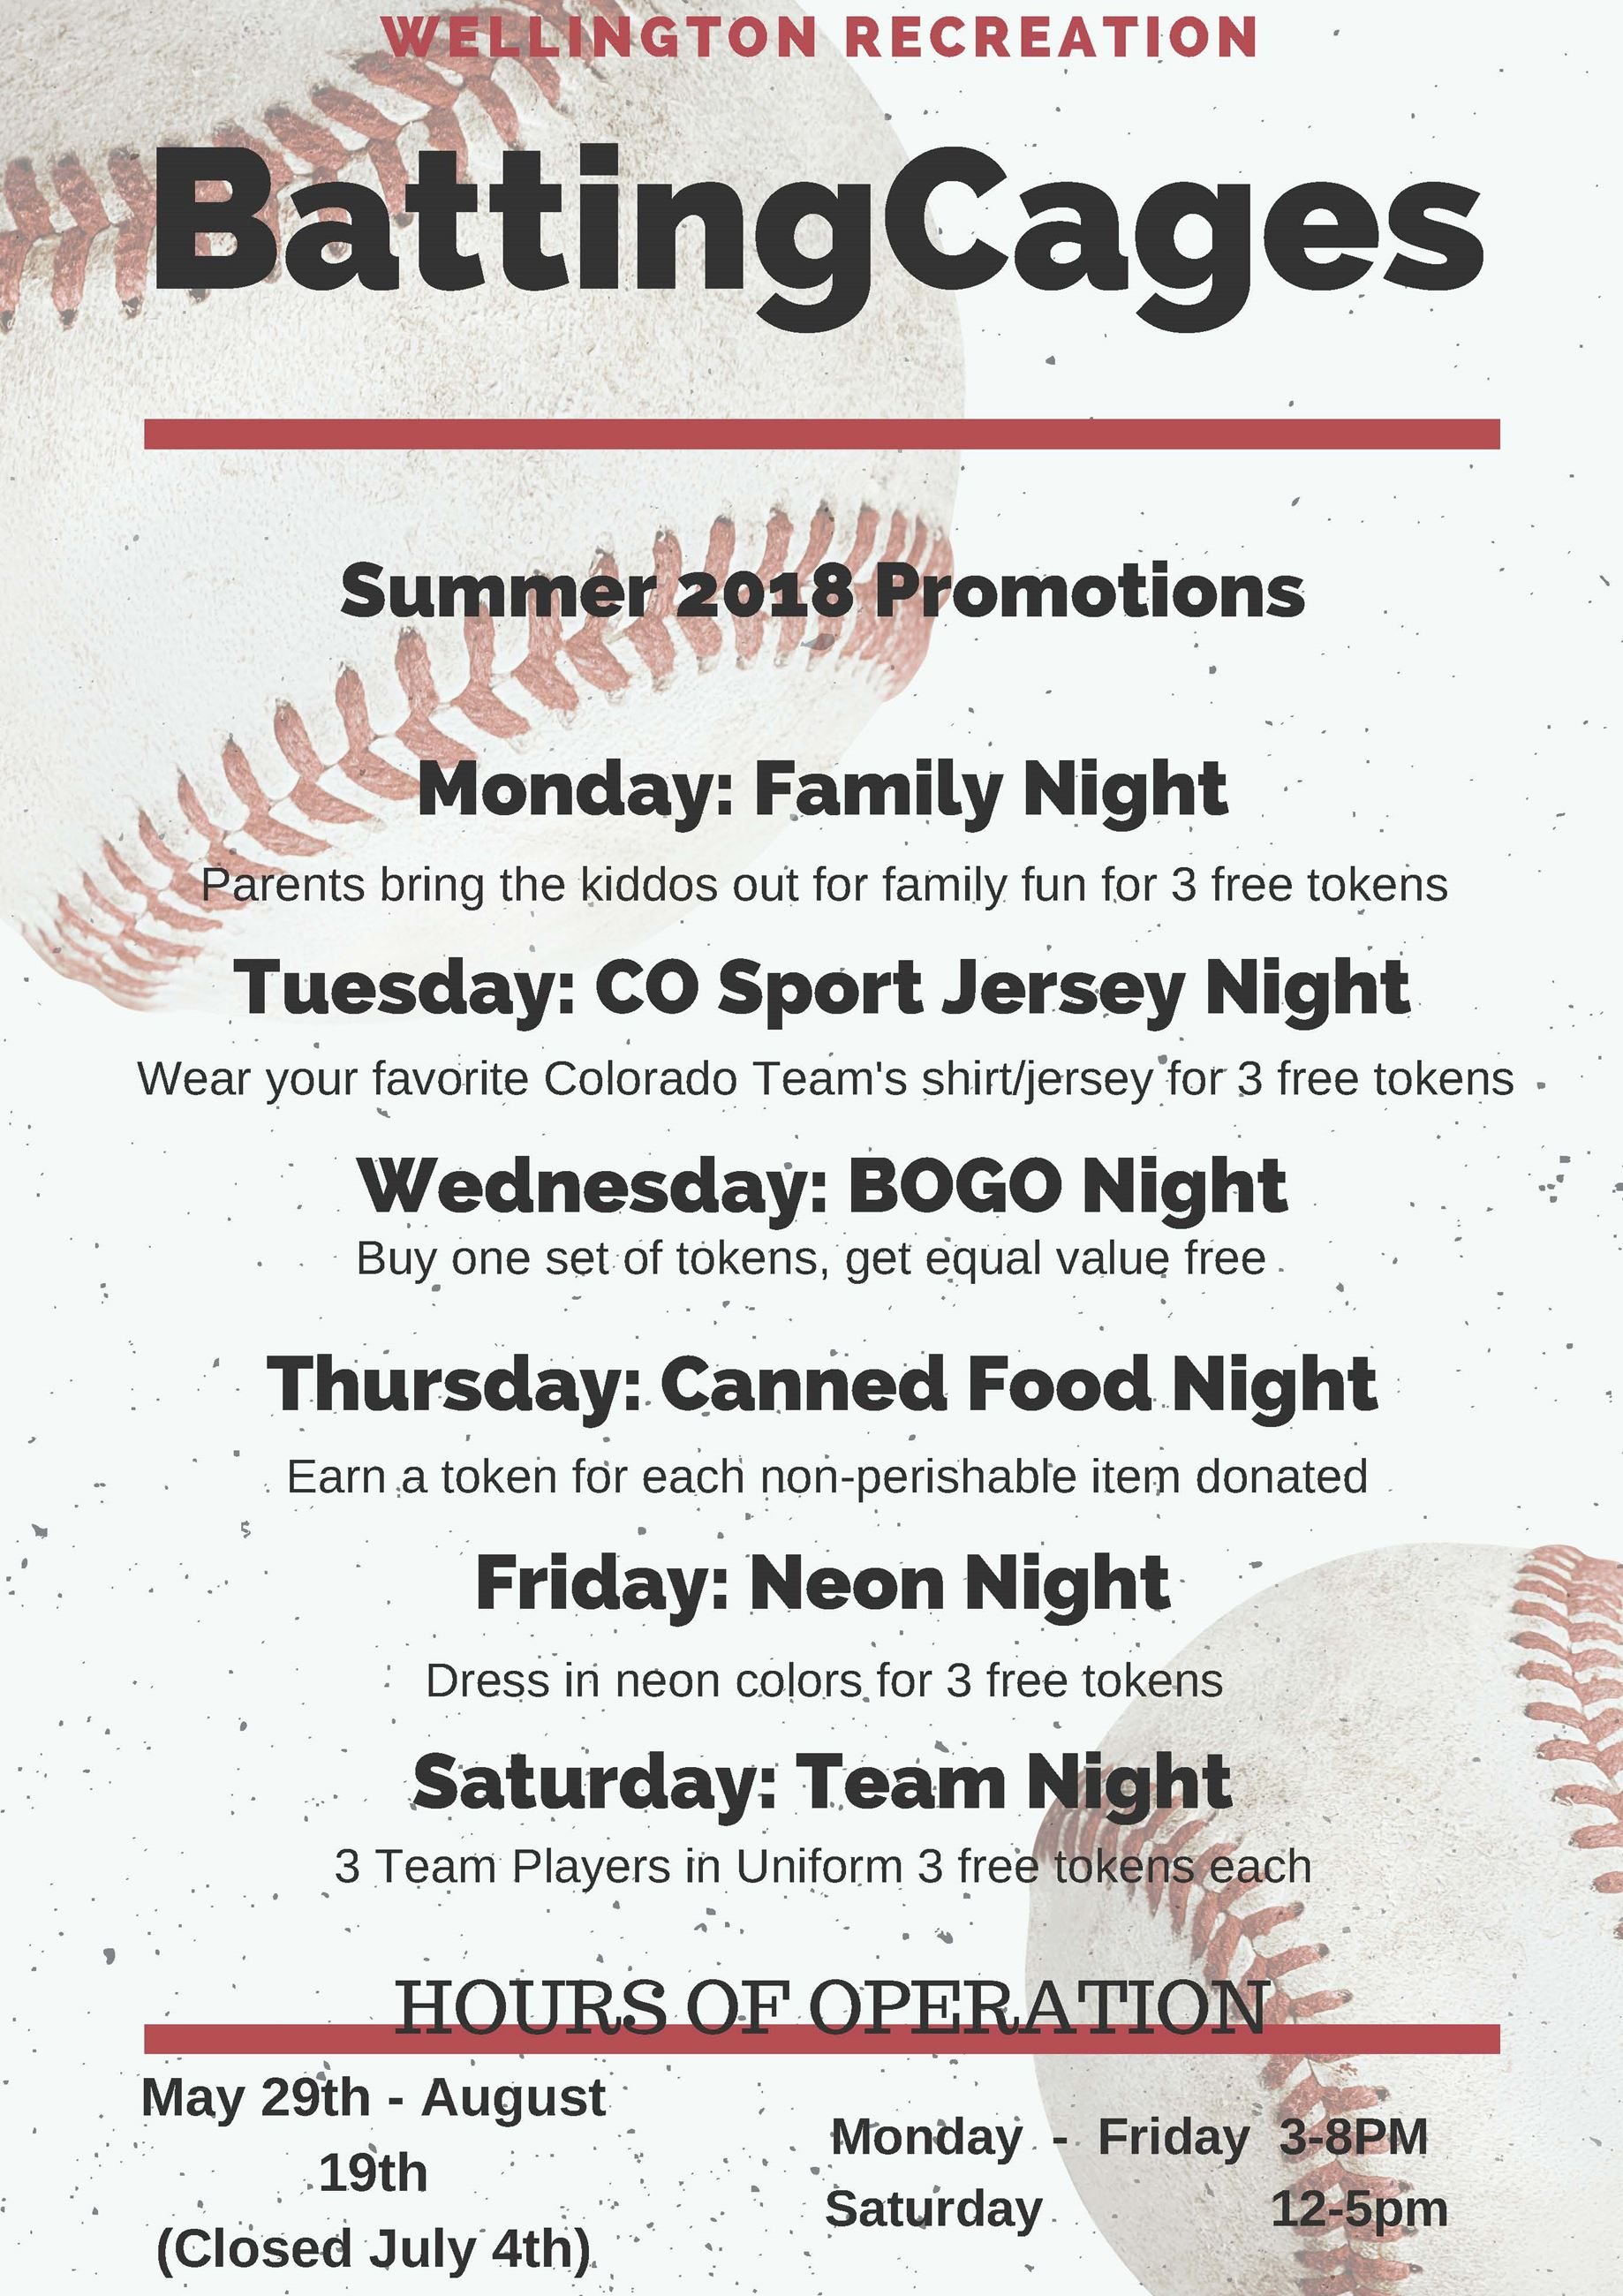 BATTING CAGE PROMO SUMMER 2018